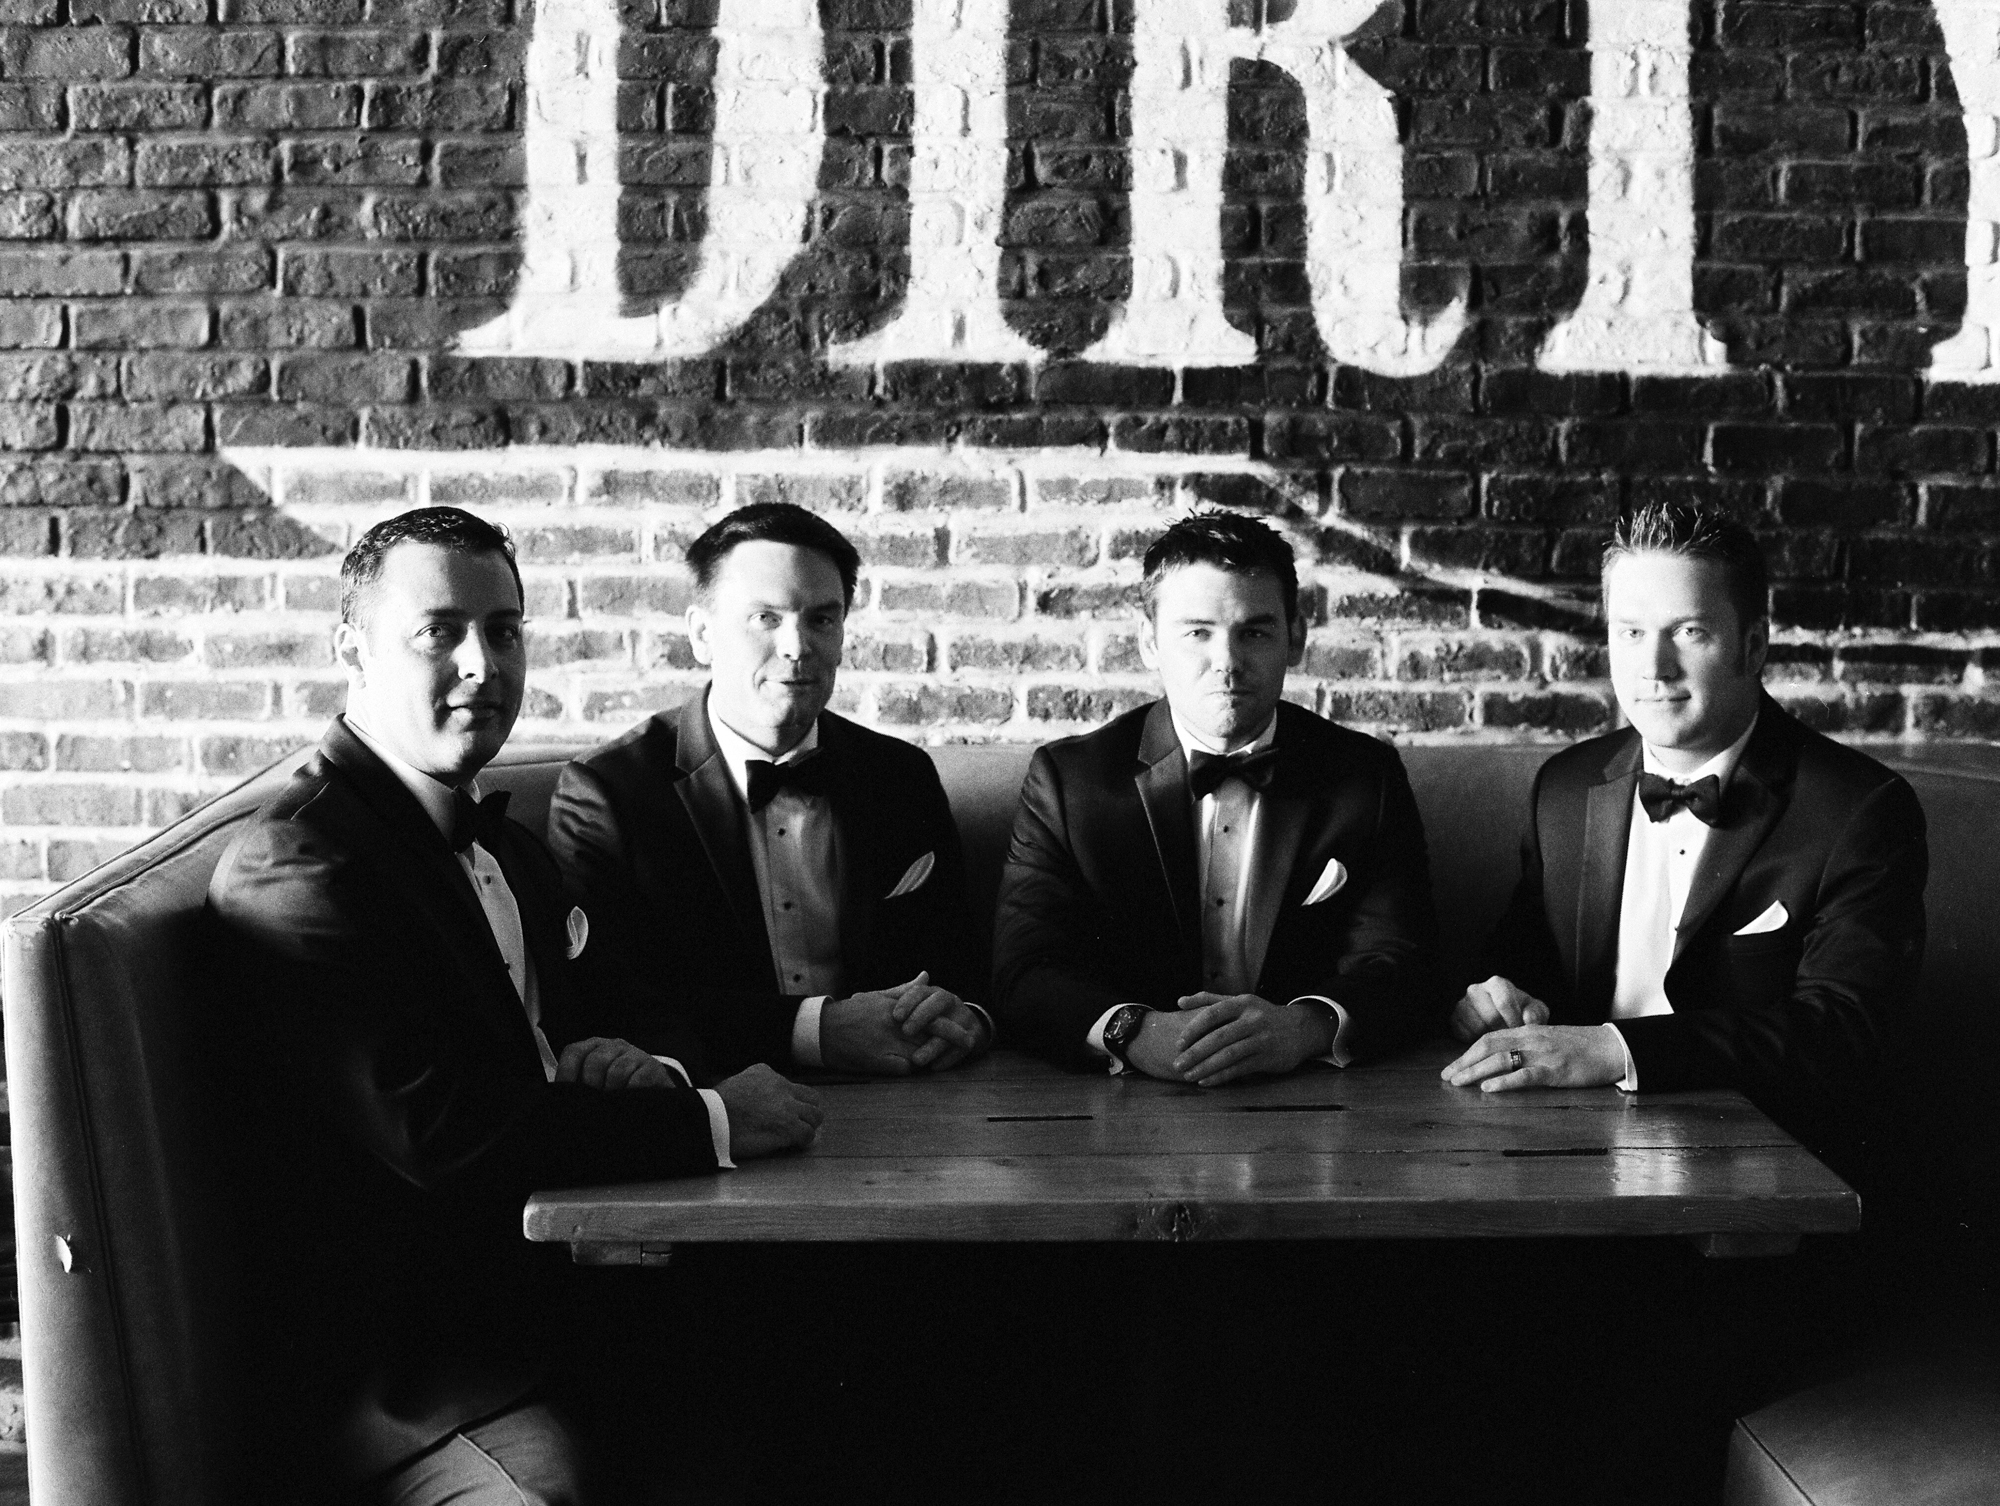 Groom and groomsmen at the Dirty Northern in Whitehorse, Yukon